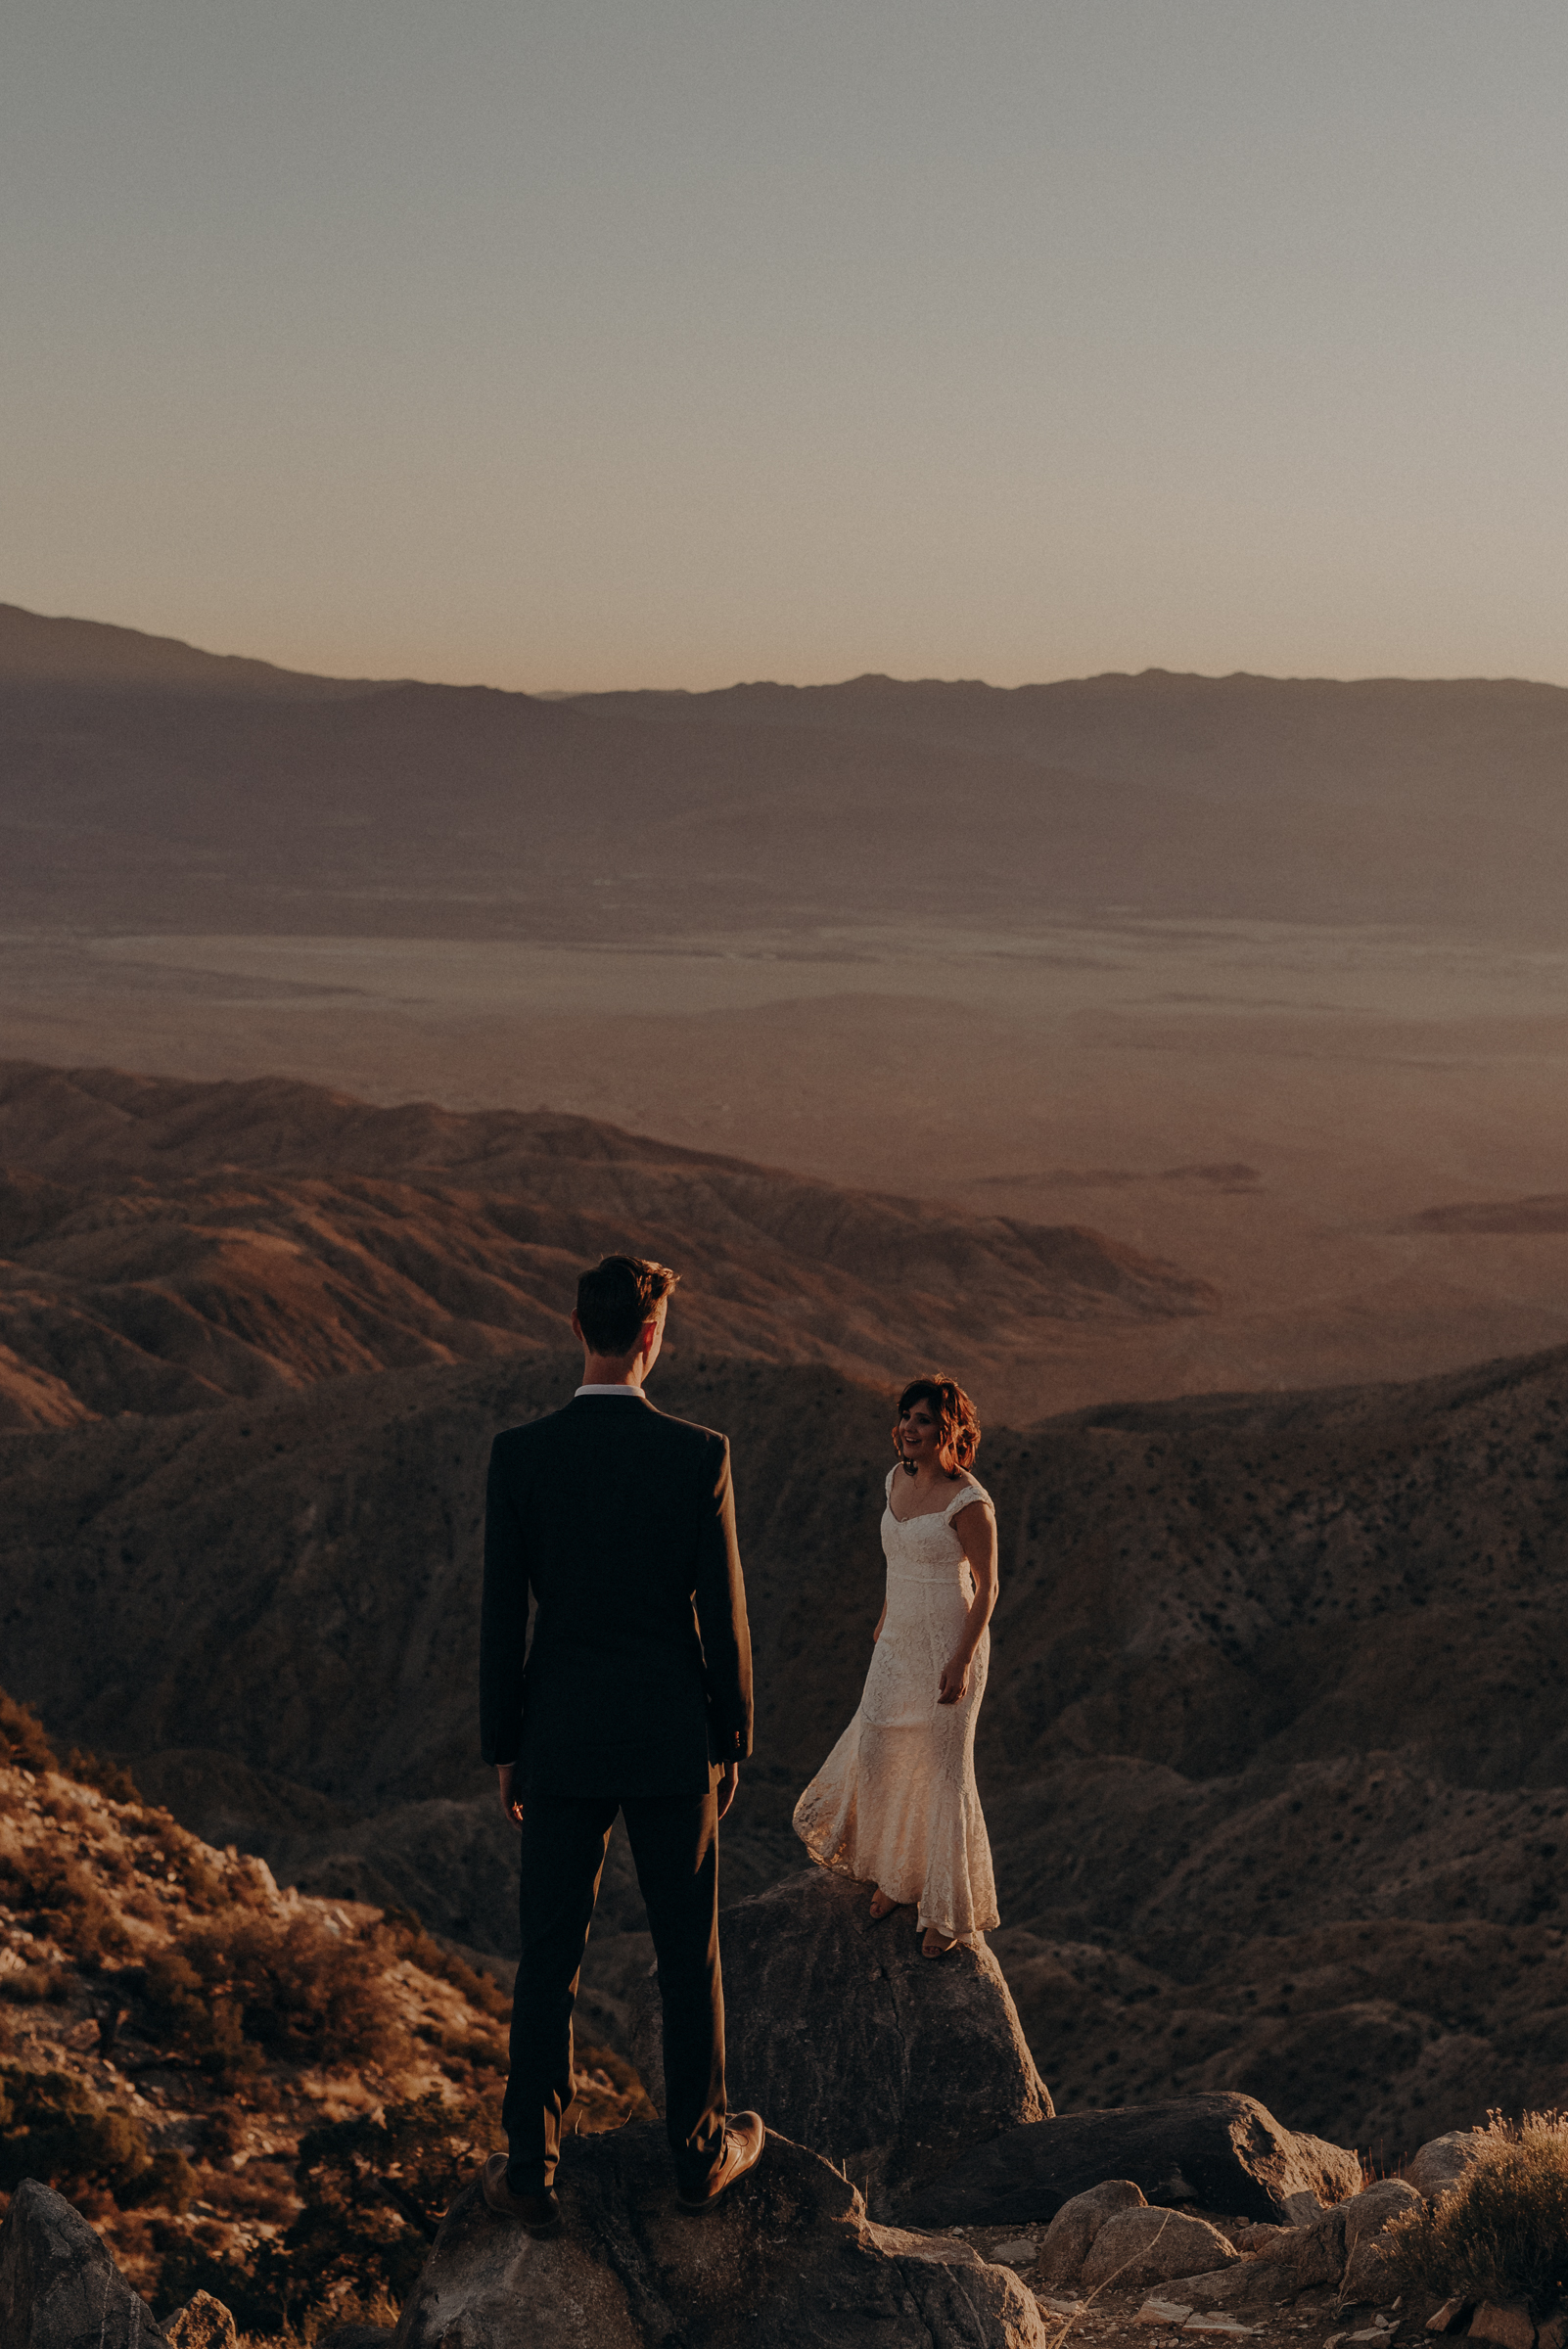 Joshua Tree Elopement - Los Angeles Wedding Photographers - IsaiahAndTaylor.com-104.jpg